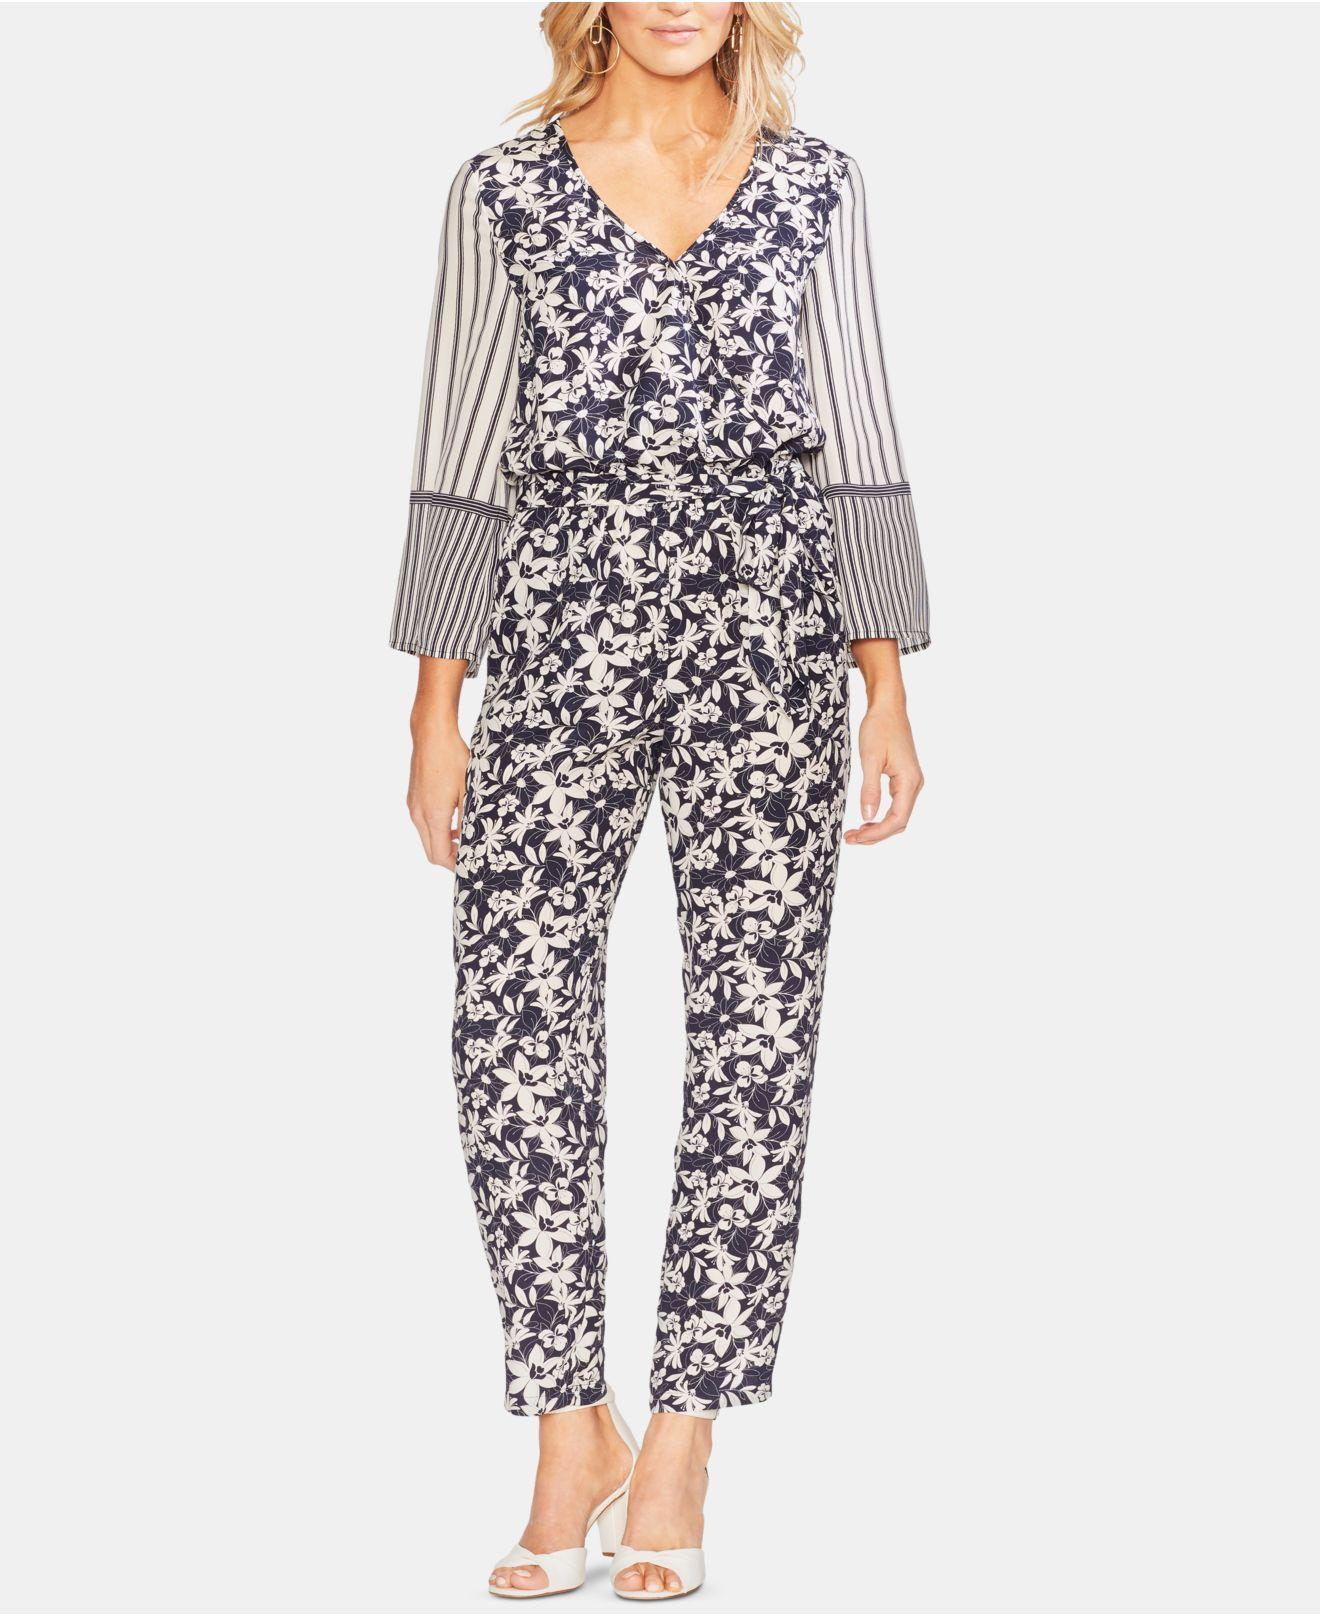 be895ce9d11 Lyst - Vince Camuto Printed Tie-waist Jumpsuit in Blue - Save 25%